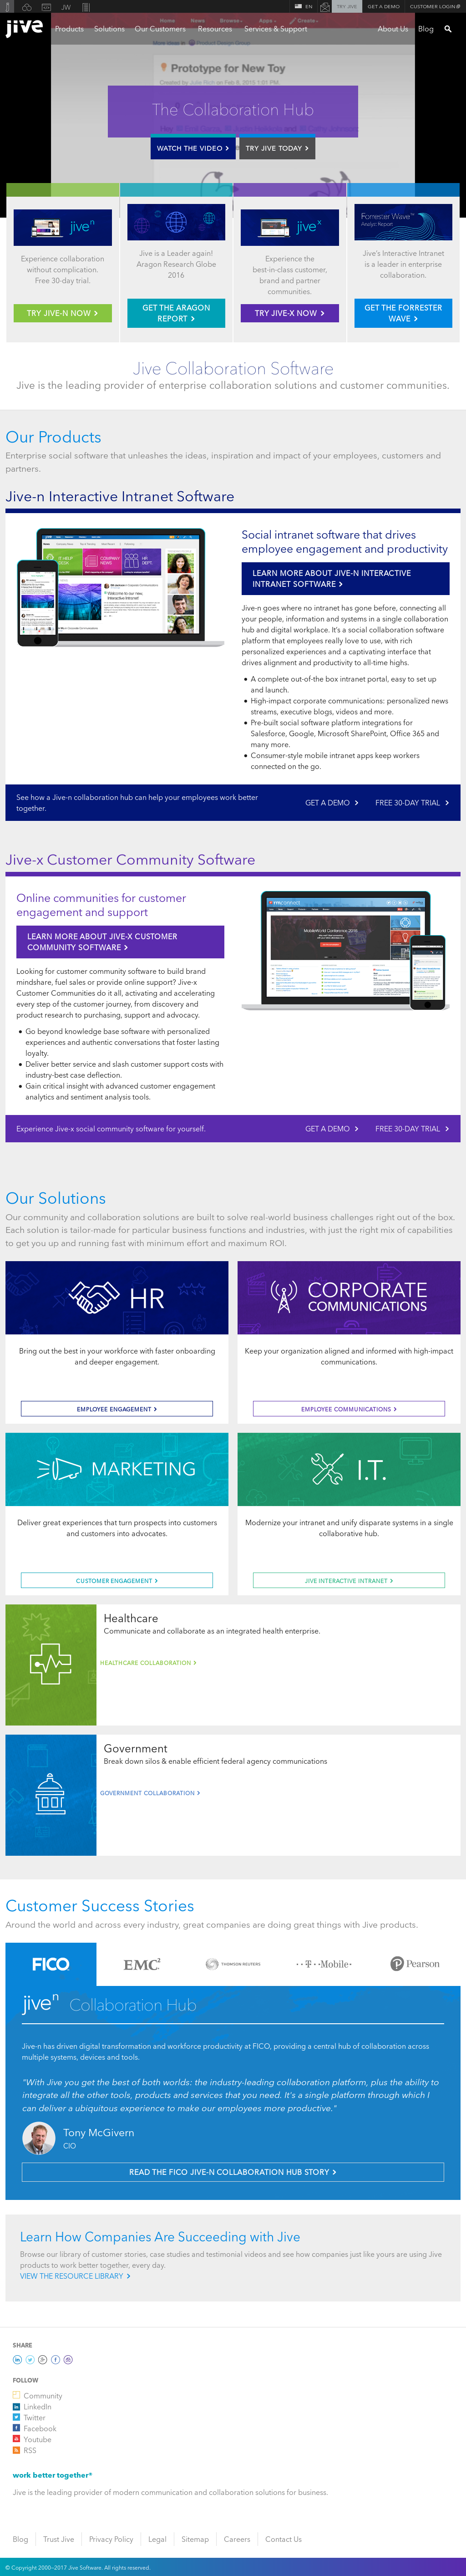 Jive Software Competitors, Revenue and Employees - Owler